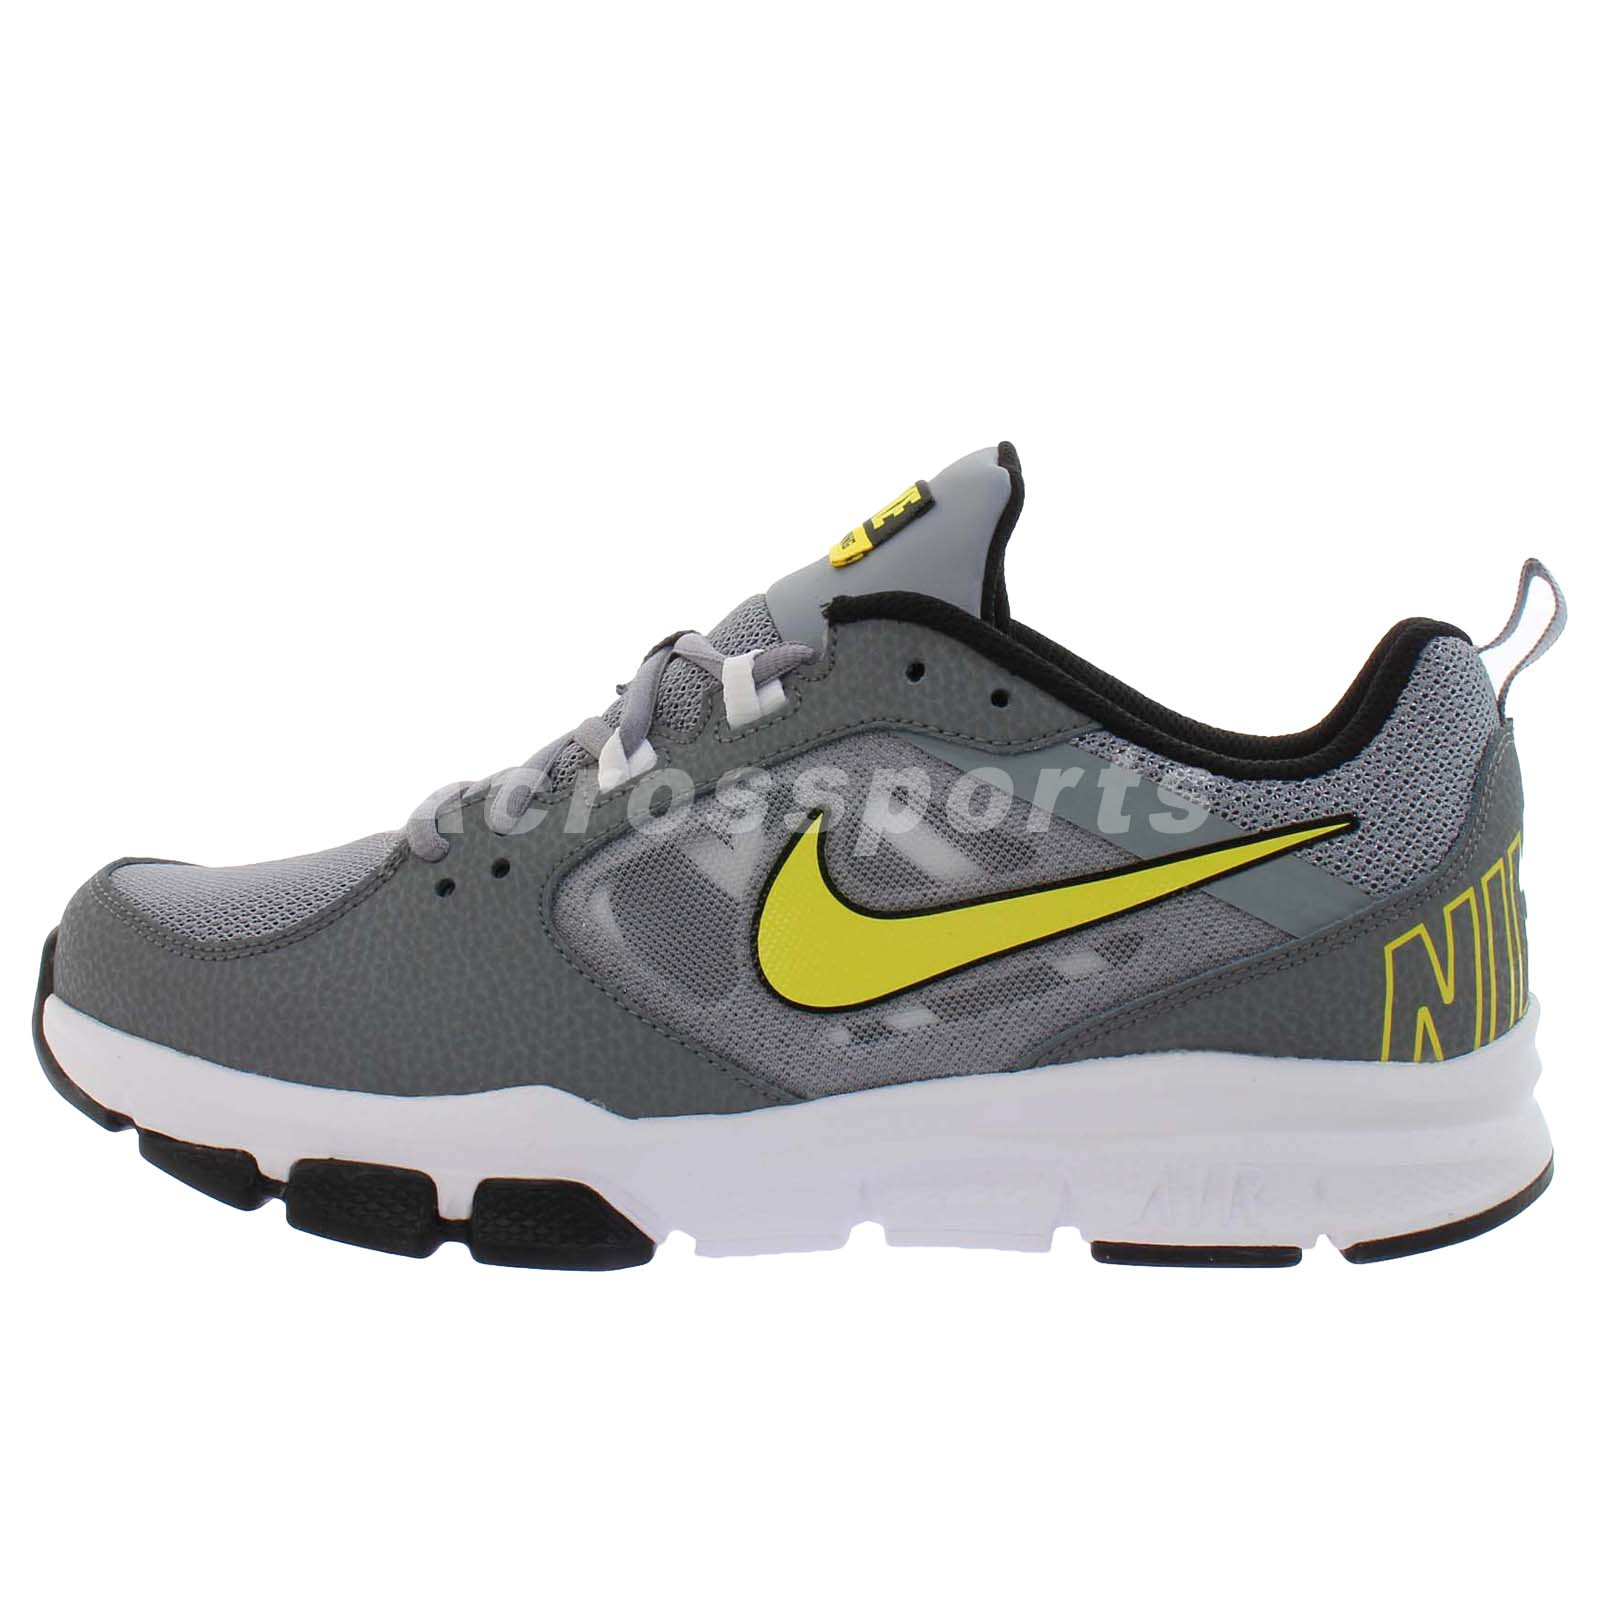 Mens Nike Air Velocitrainer Cross Training Shoes